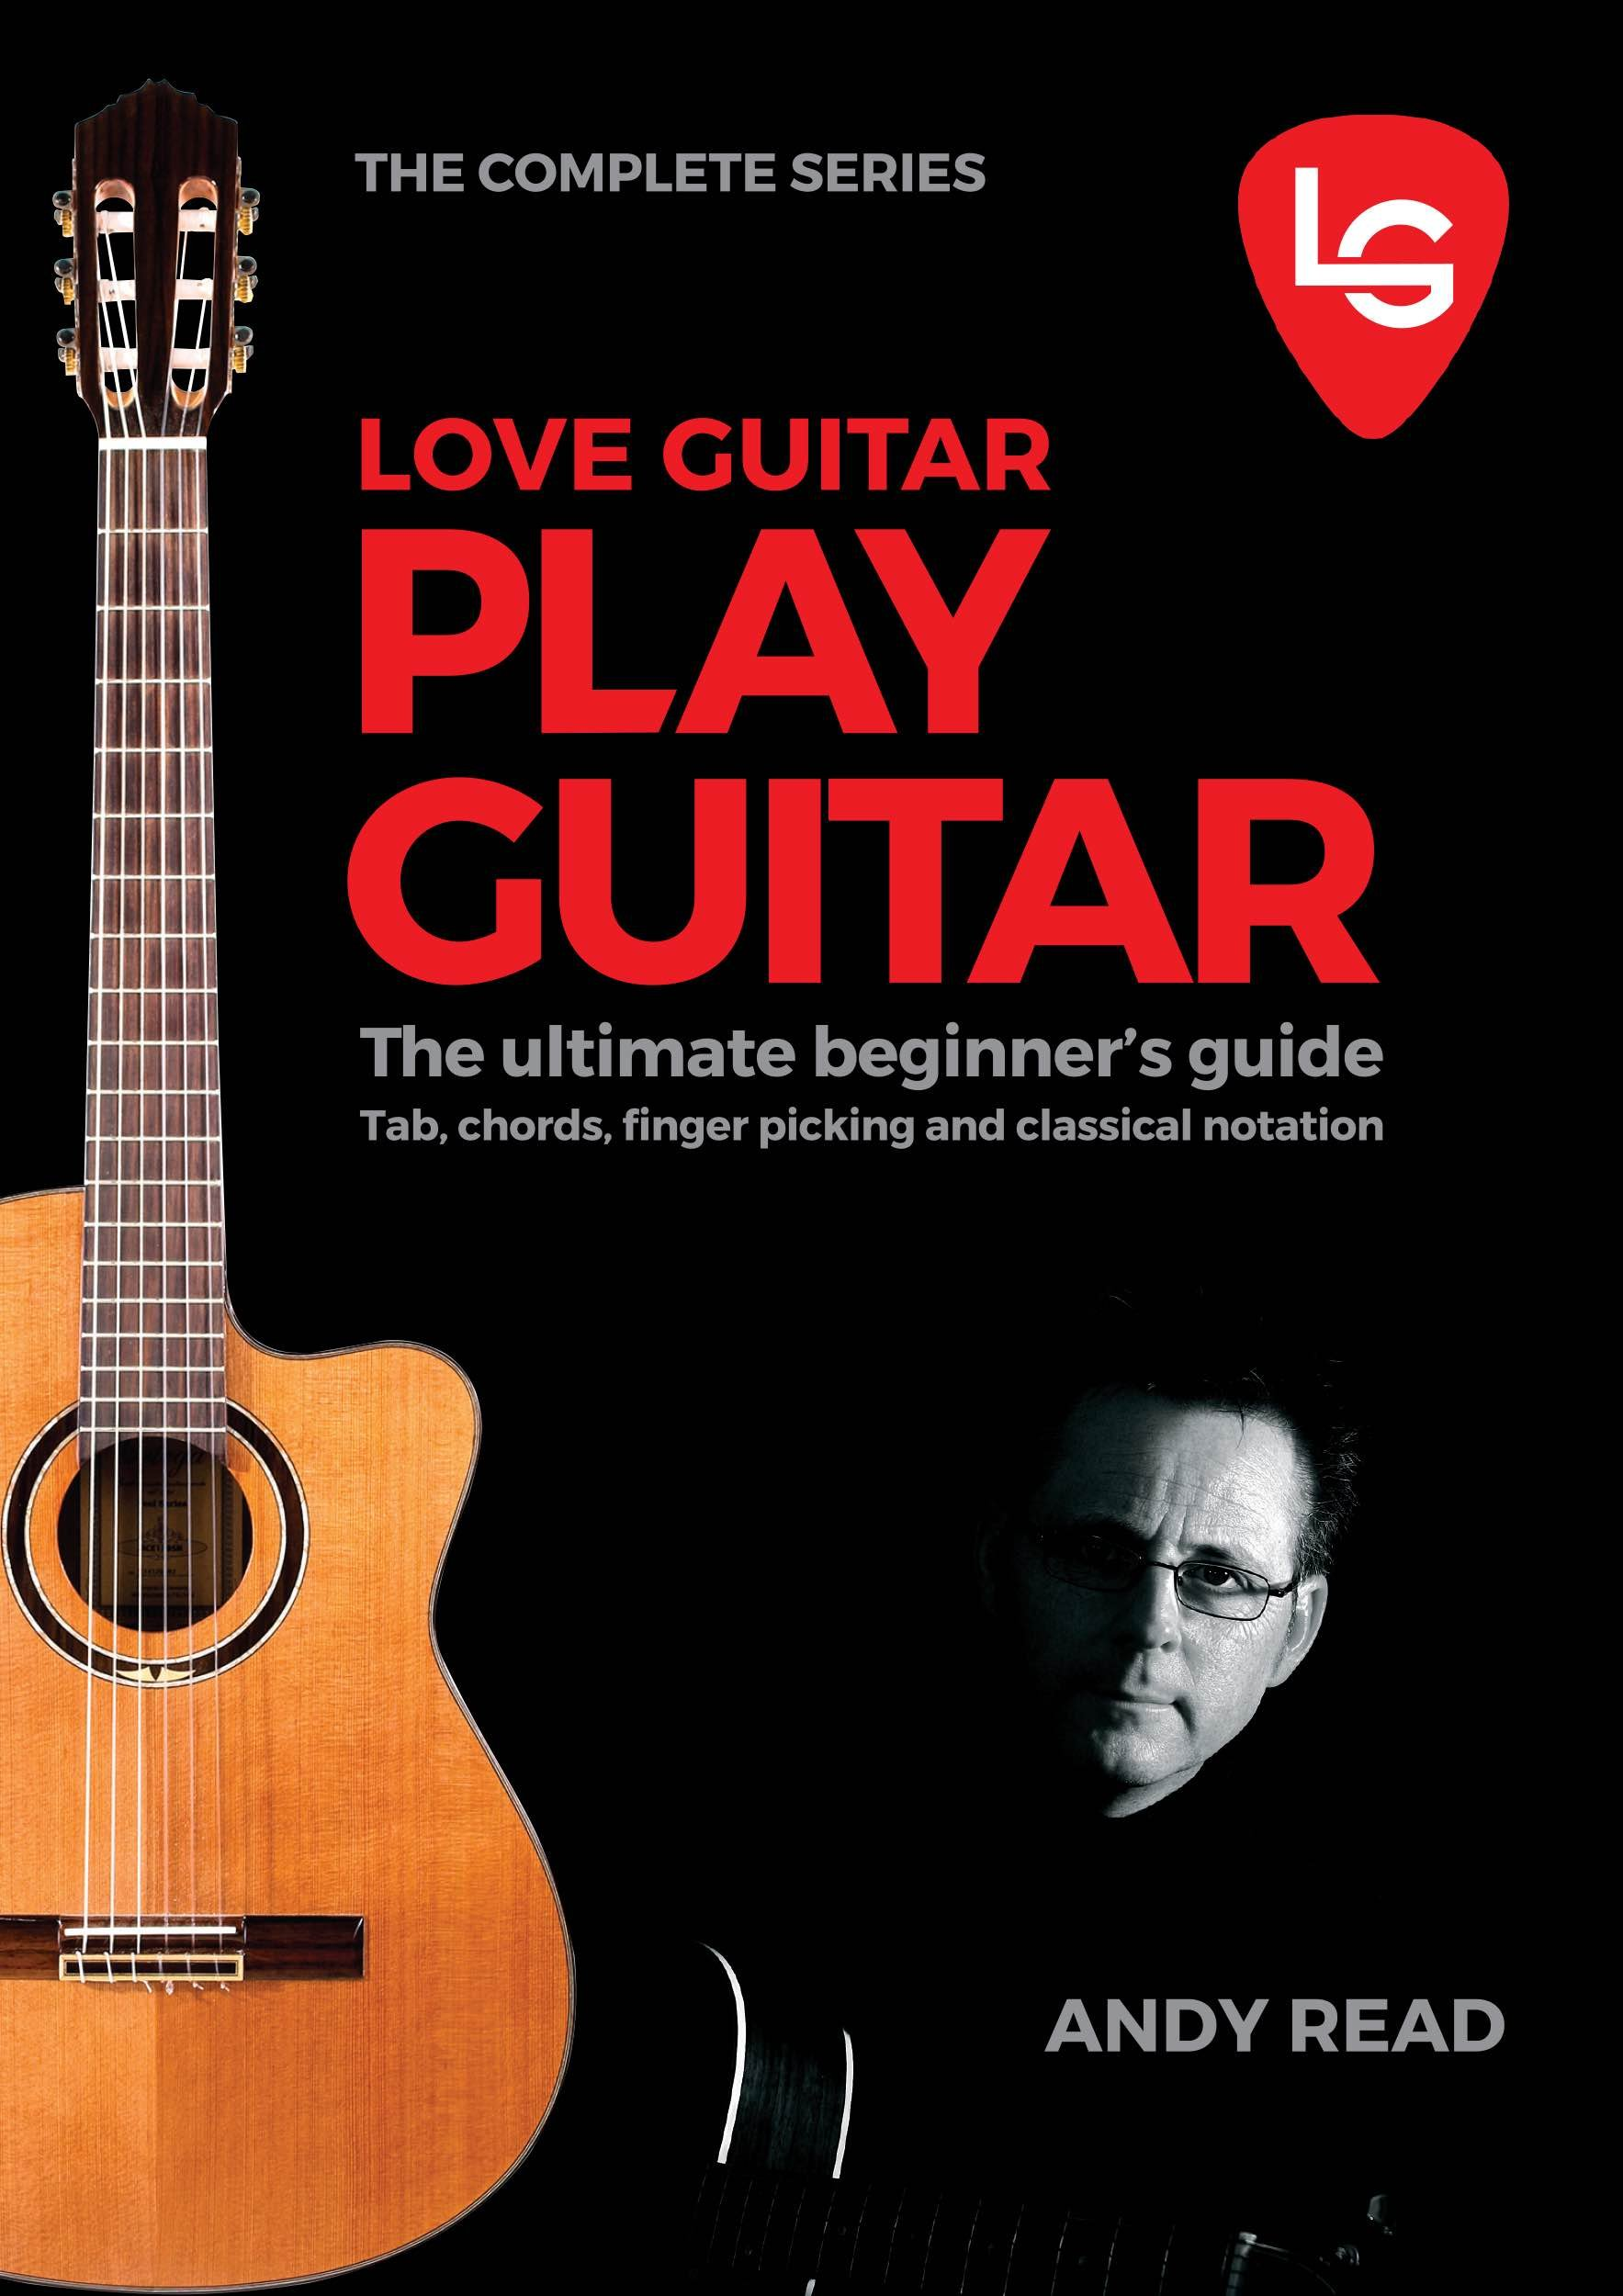 LOVE GUITAR PLAY GUITAR: The Ultimate Beginner's Guide: Amazon.co.uk: Andy  Read: Books